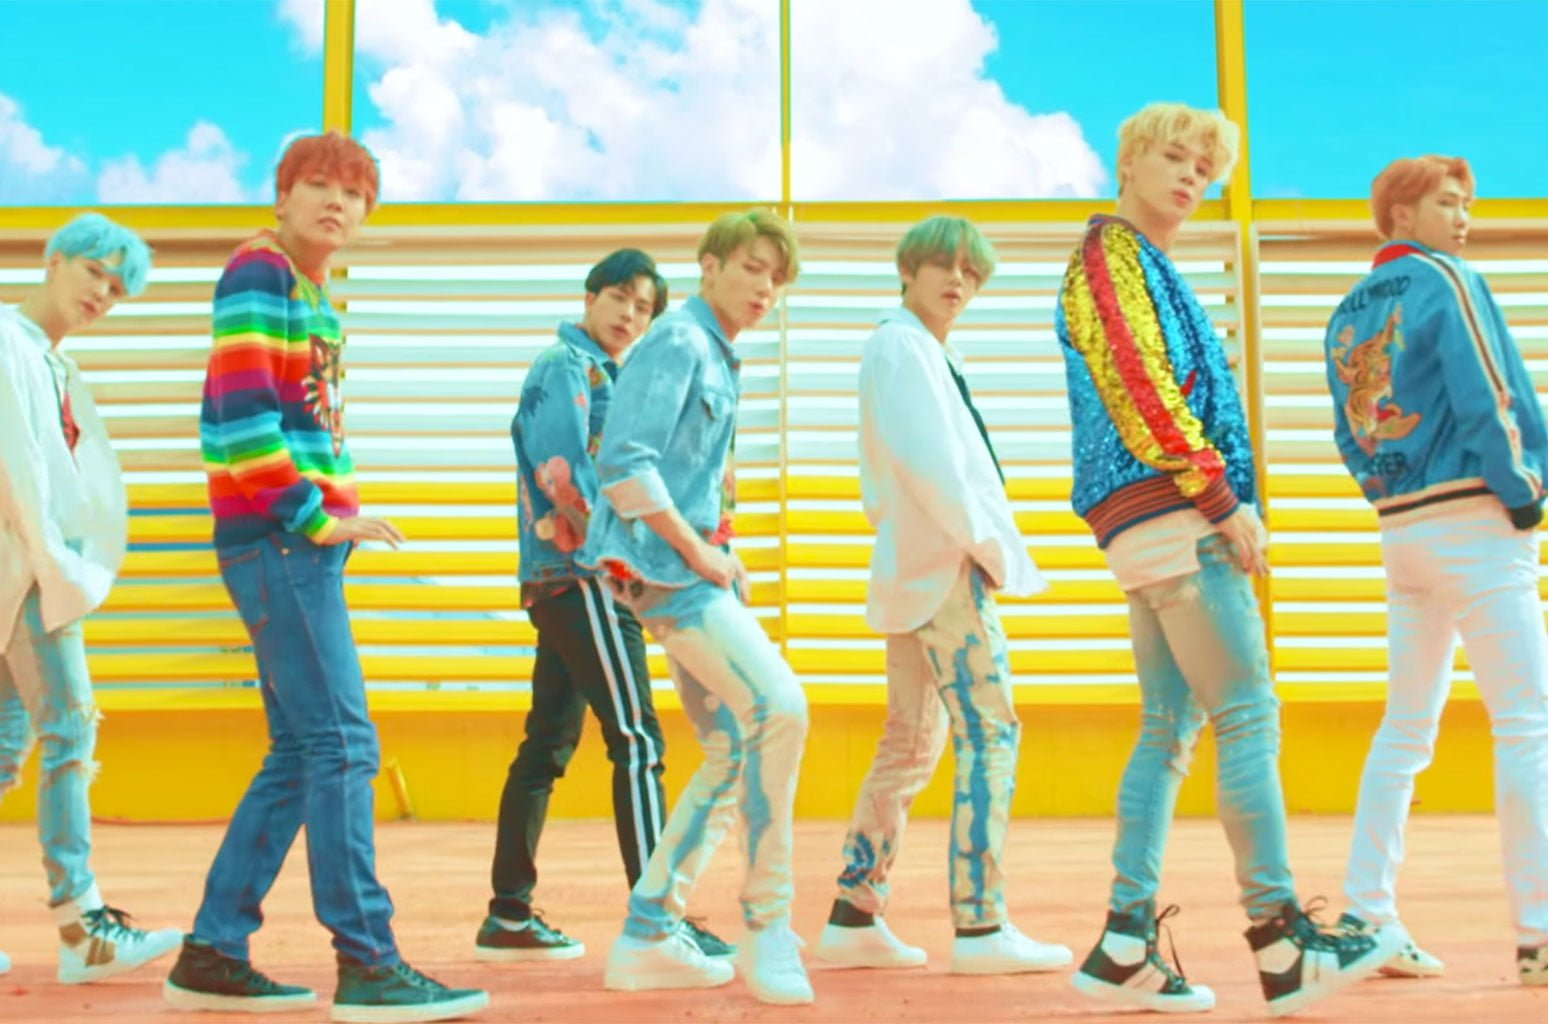 Download New Music By BTS Called DNA